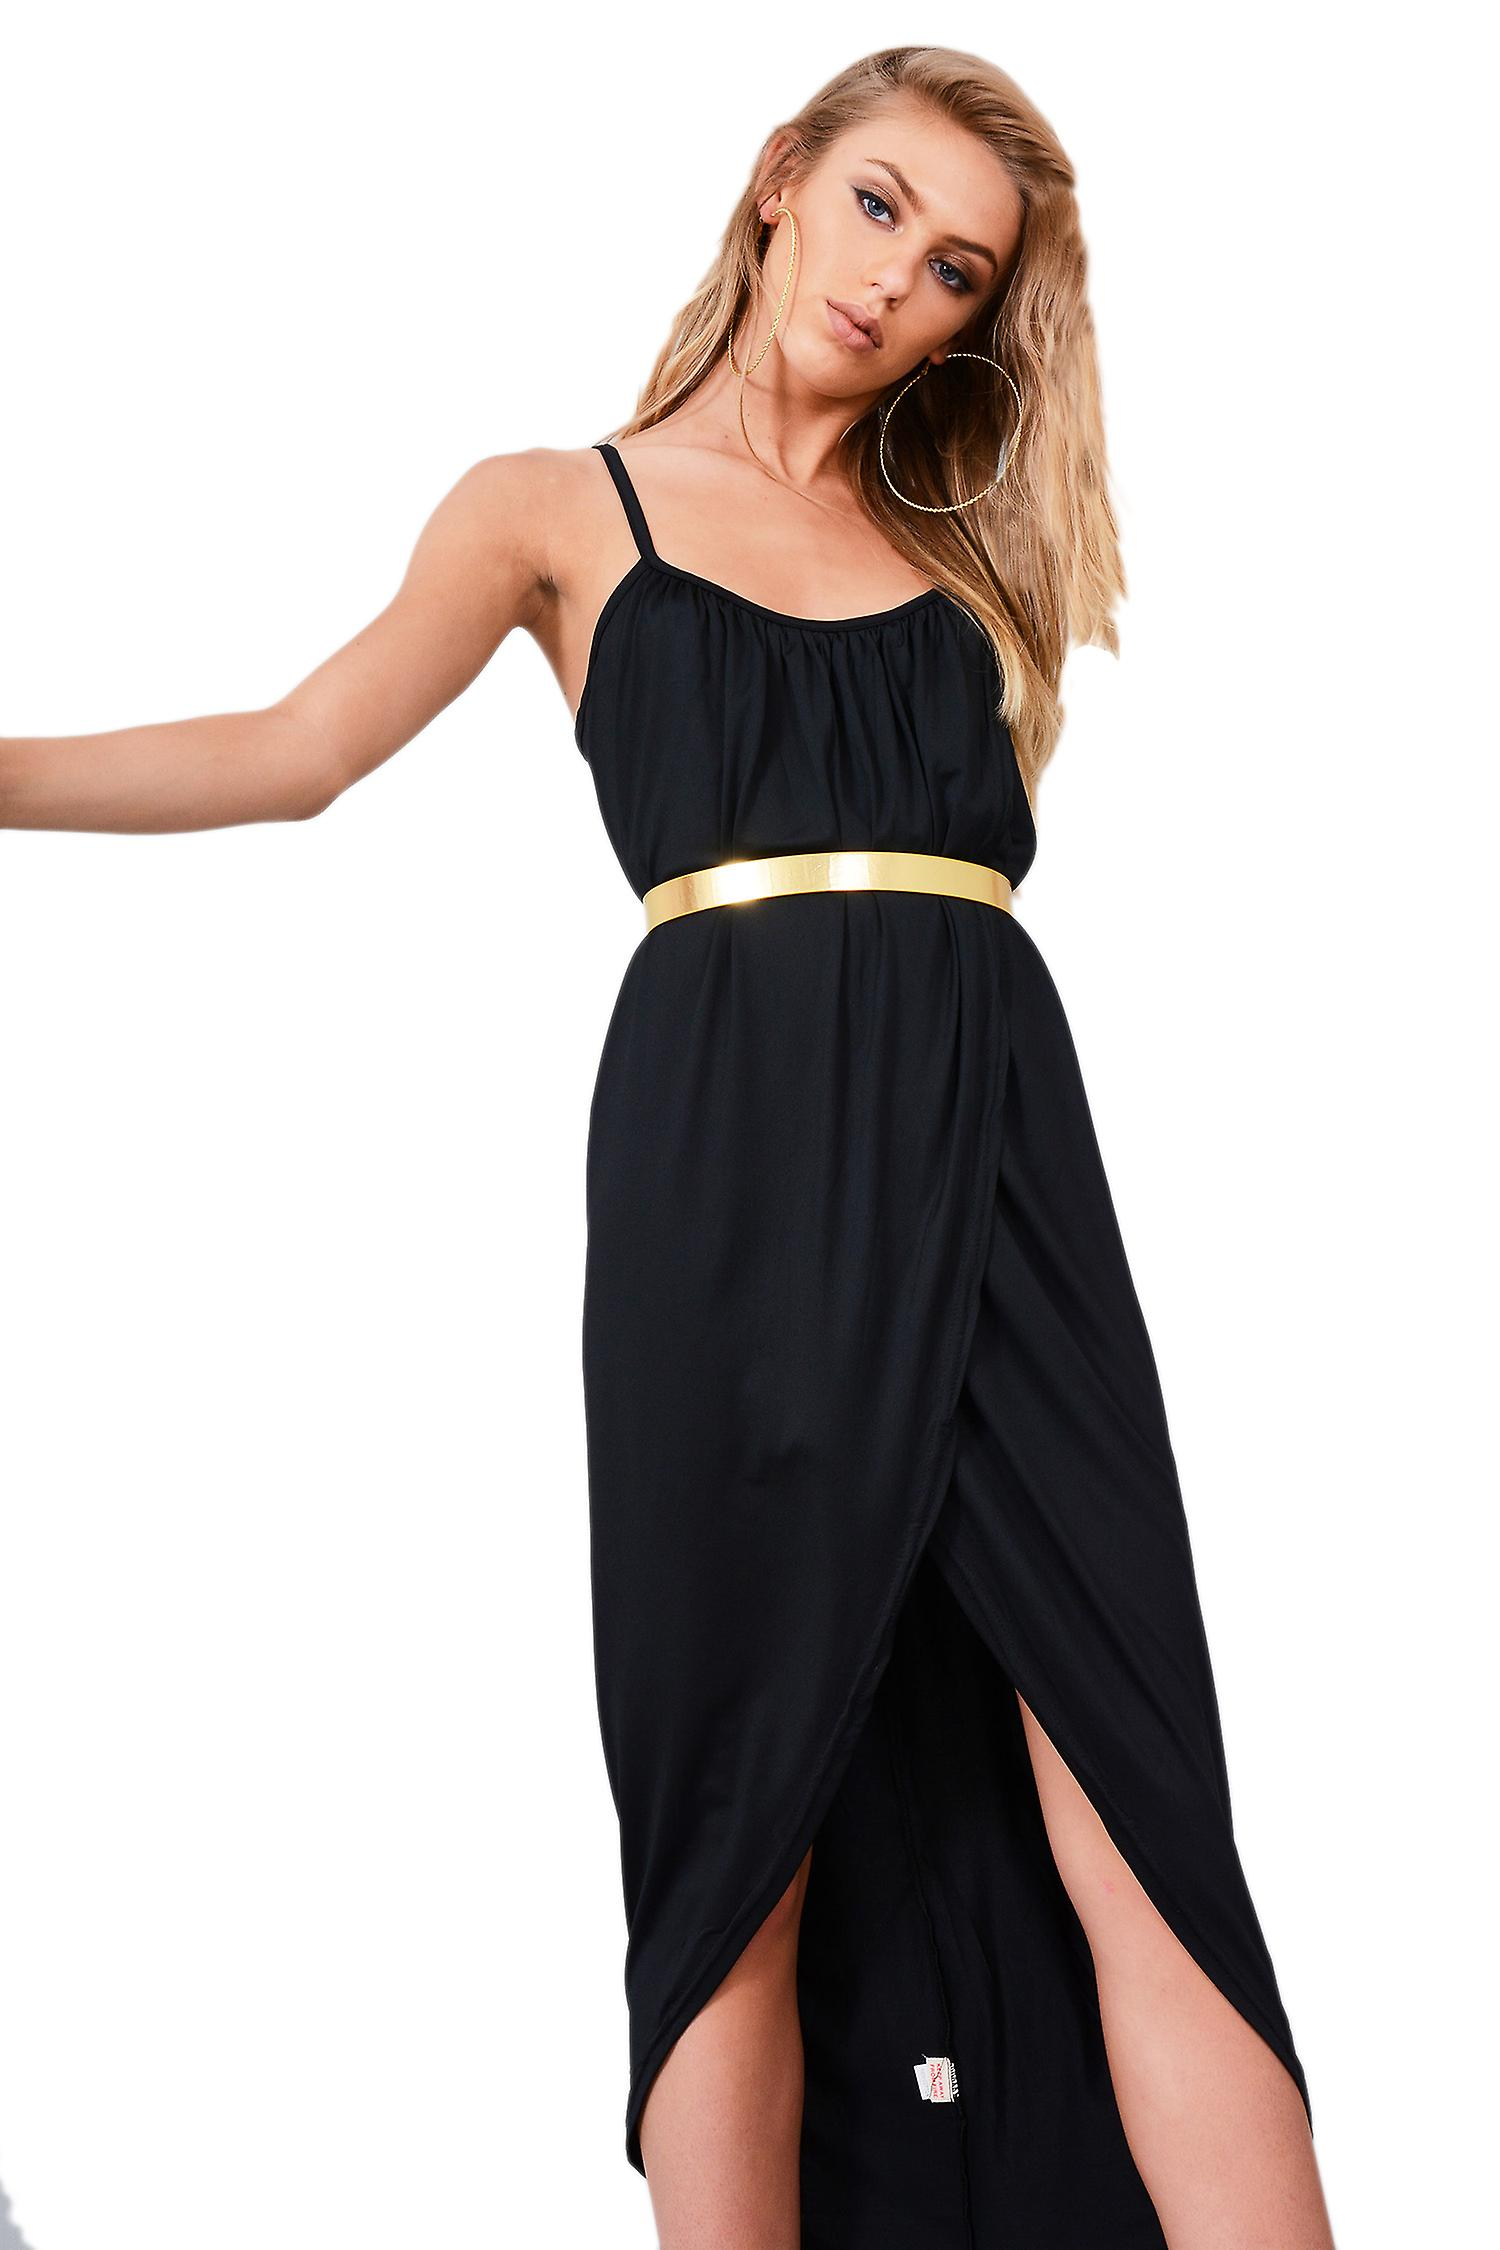 Lovemystyle Black Loose Fit Cami Wrap Dress With Gold Belt